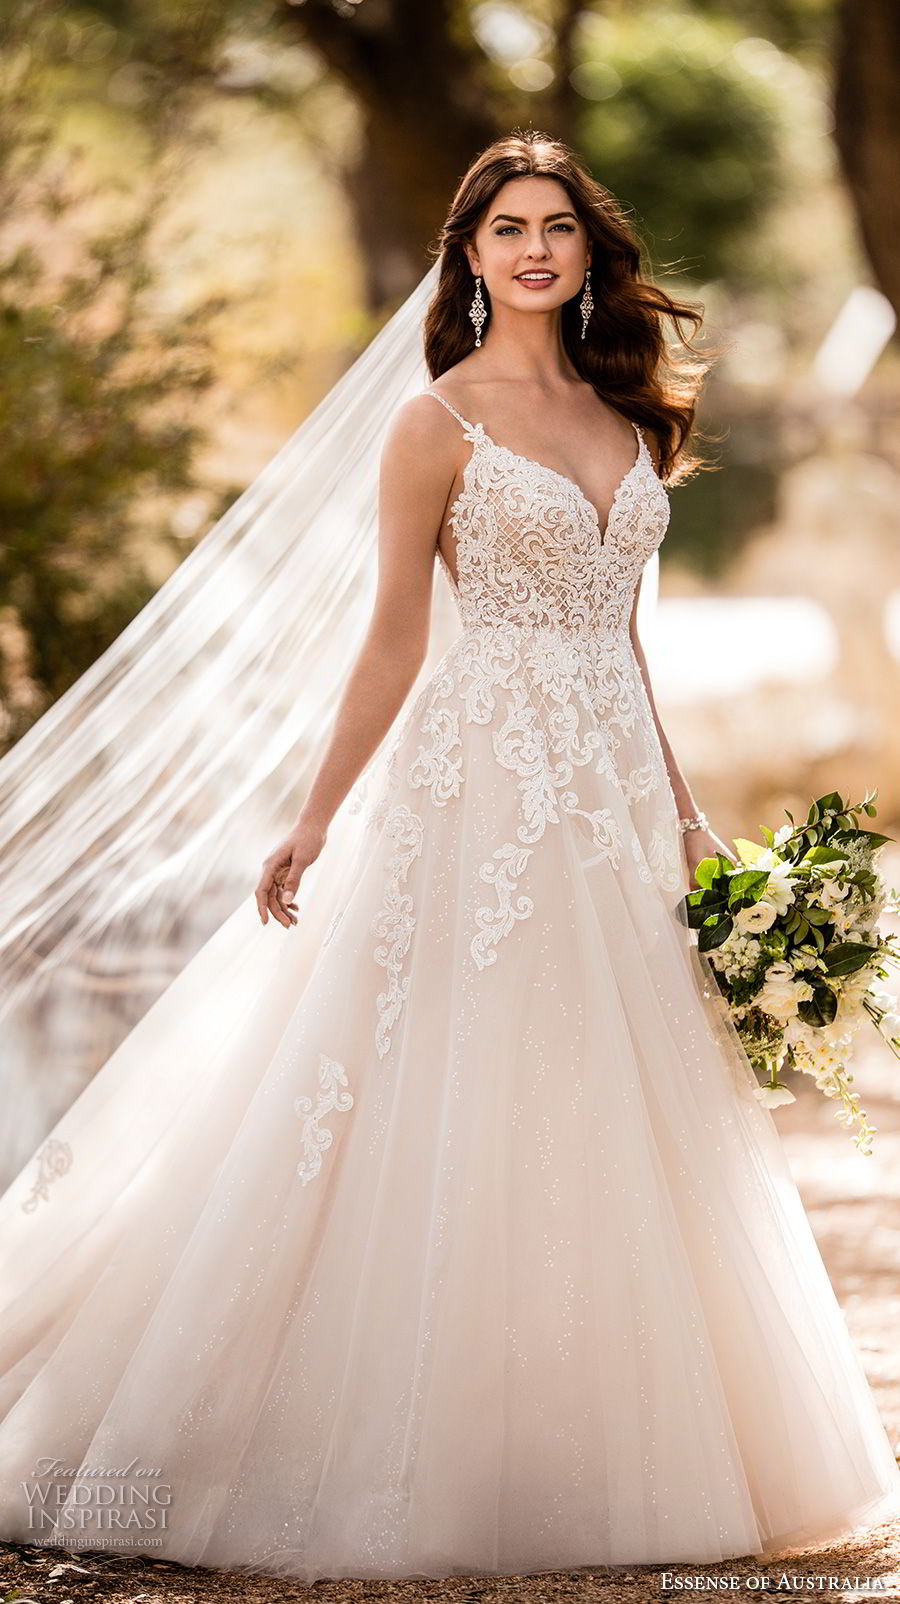 Essense of australia fall 2017 wedding dresses wedding inspirasi essense of australia fall 2017 wedding dresses ombrellifo Gallery